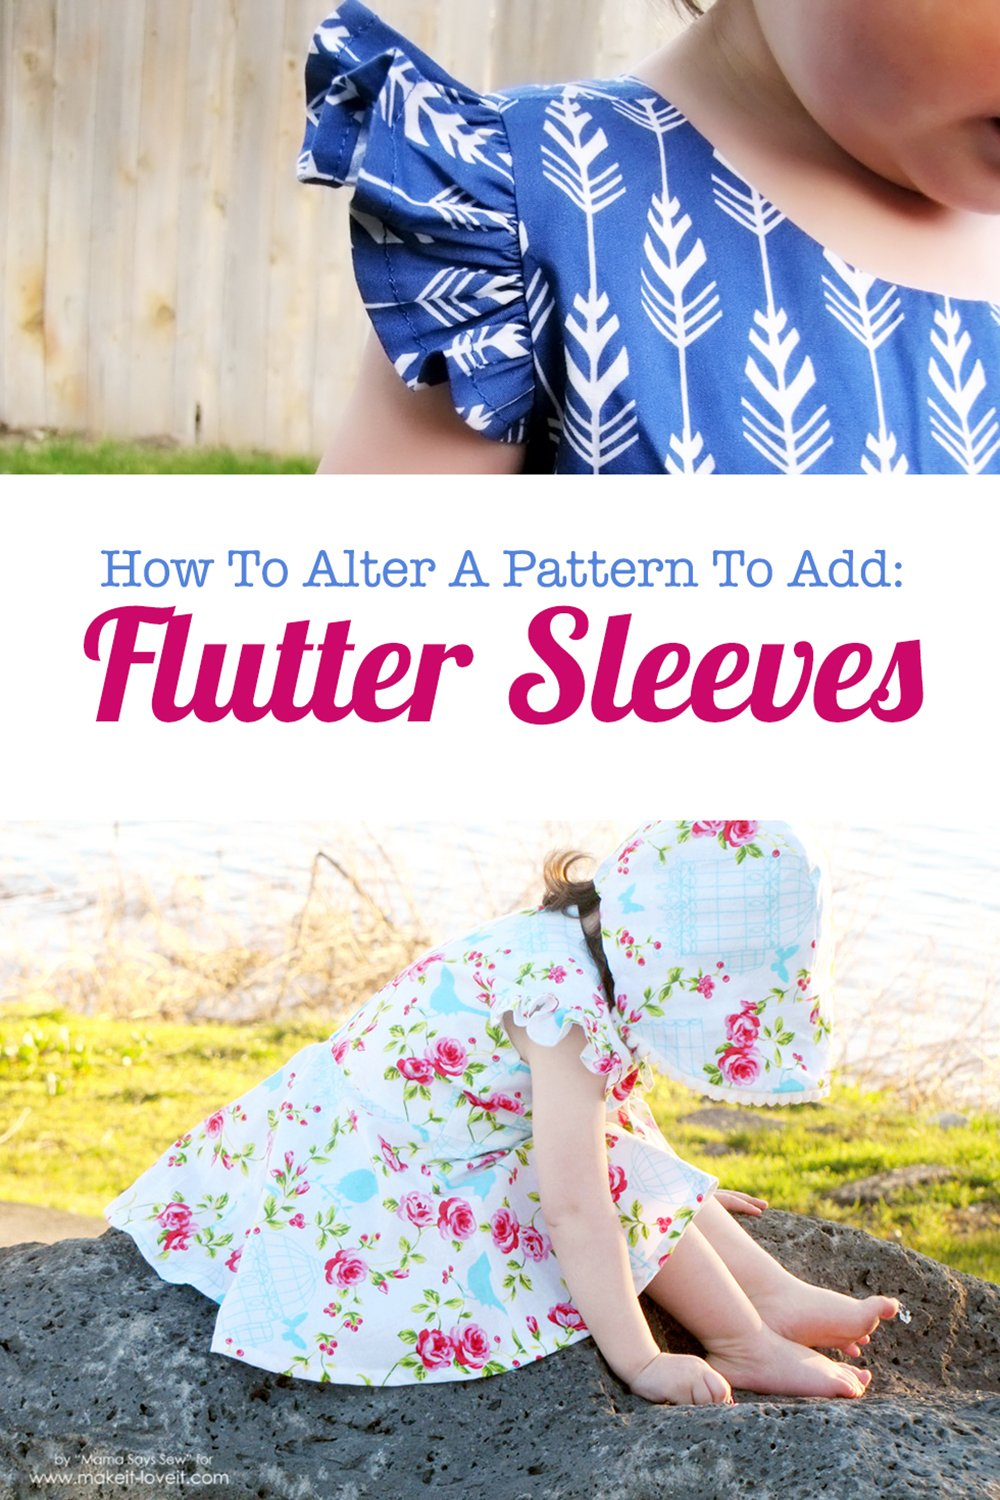 How To Add Flutter Sleeves to Clothing!